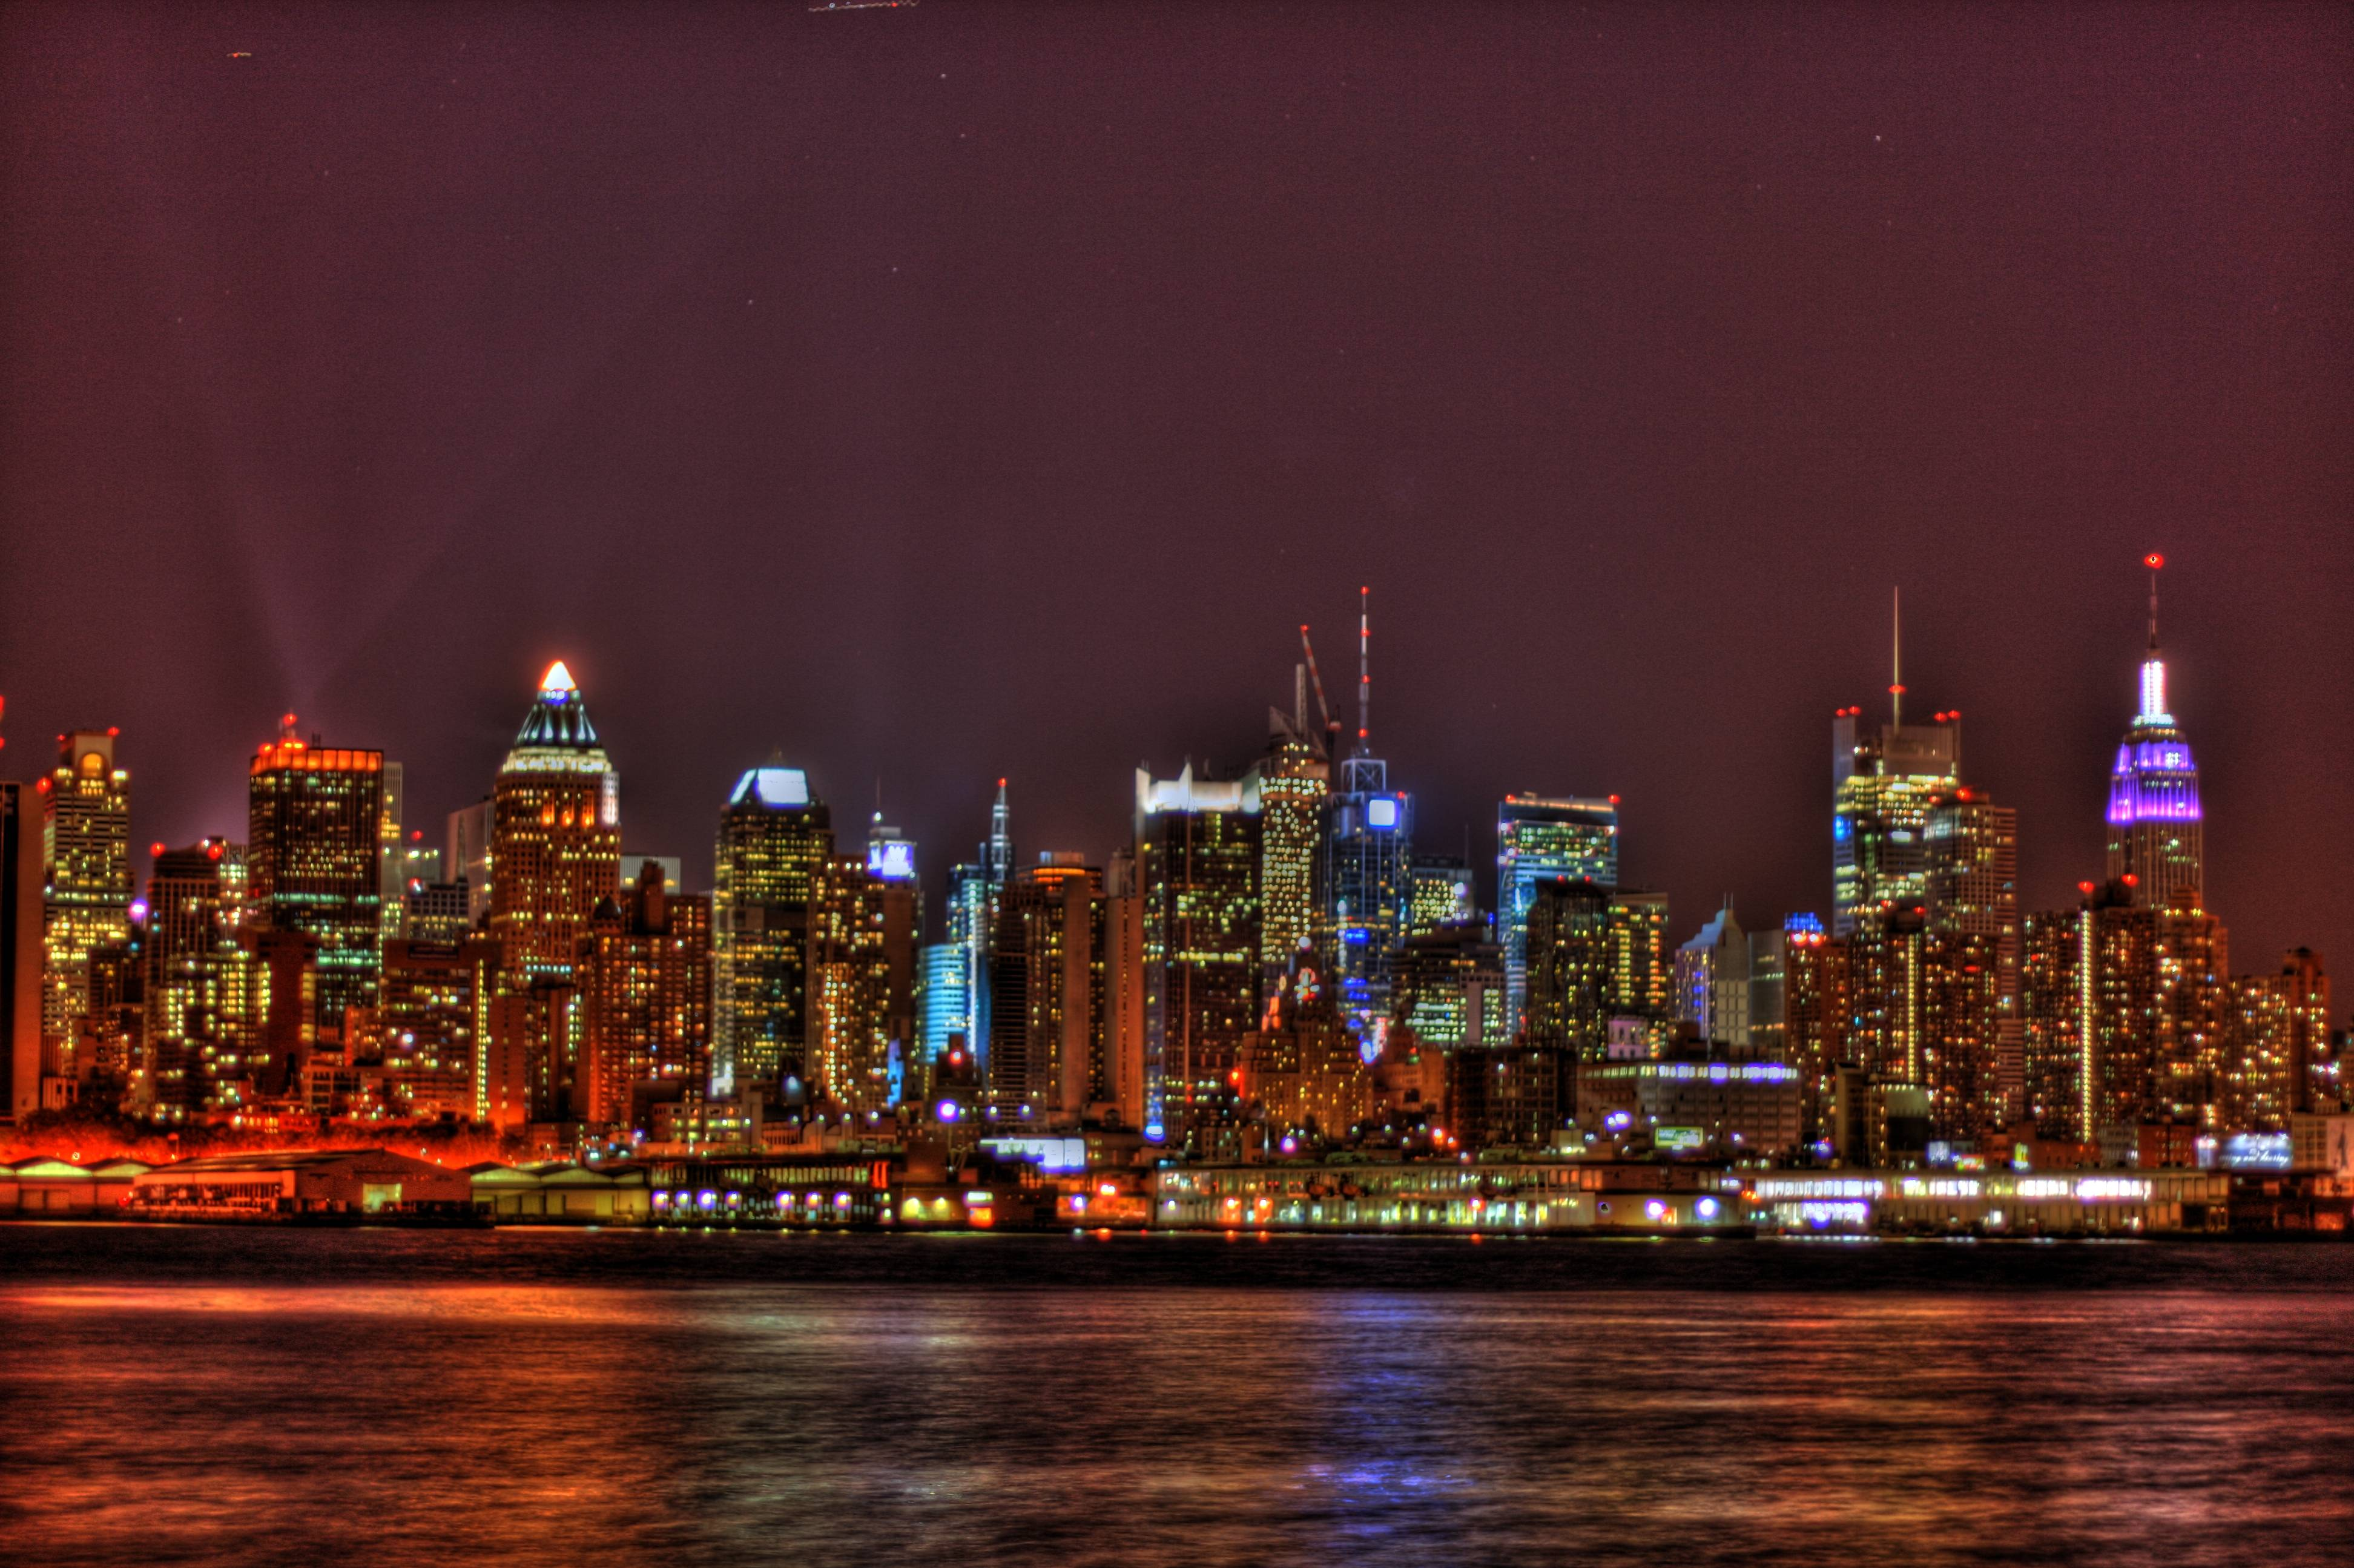 New York Skyline Wallpapers - Wallpaper Cave